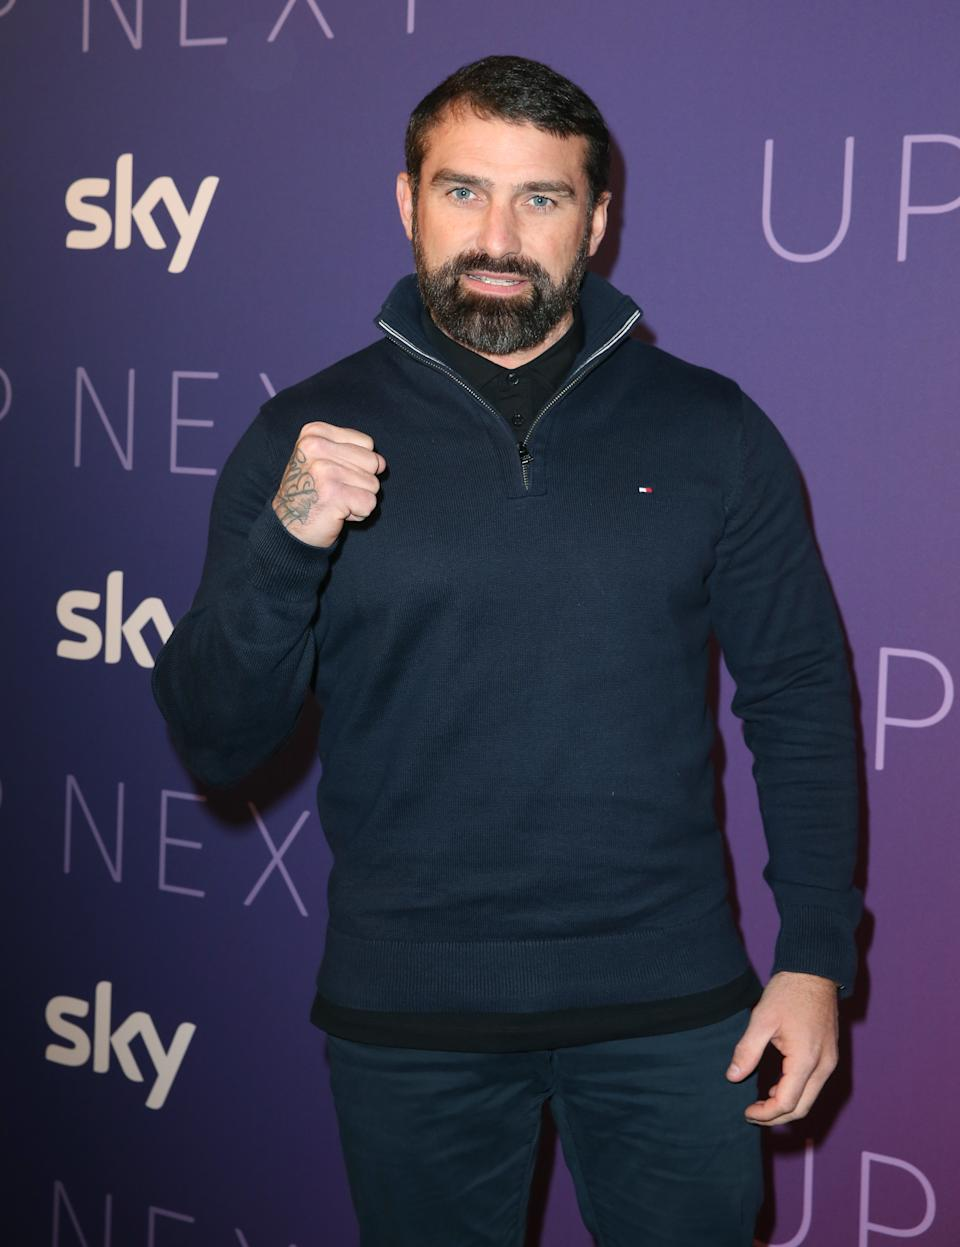 Ant Middleton arrives for the Sky Up Next showcase at the Tate Modern, London.